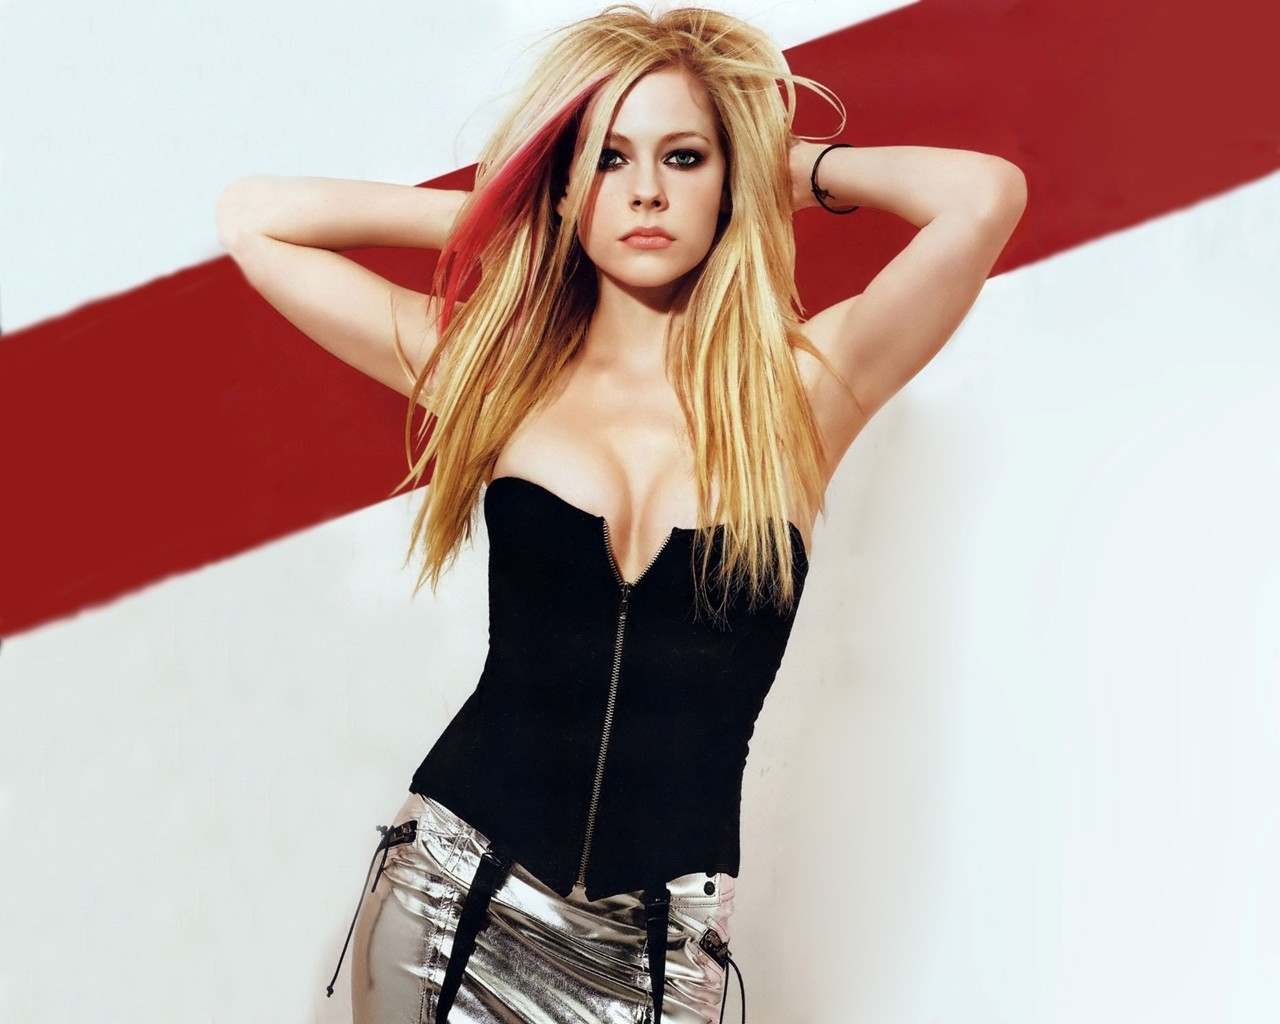 avril lavigne top 10 songs download